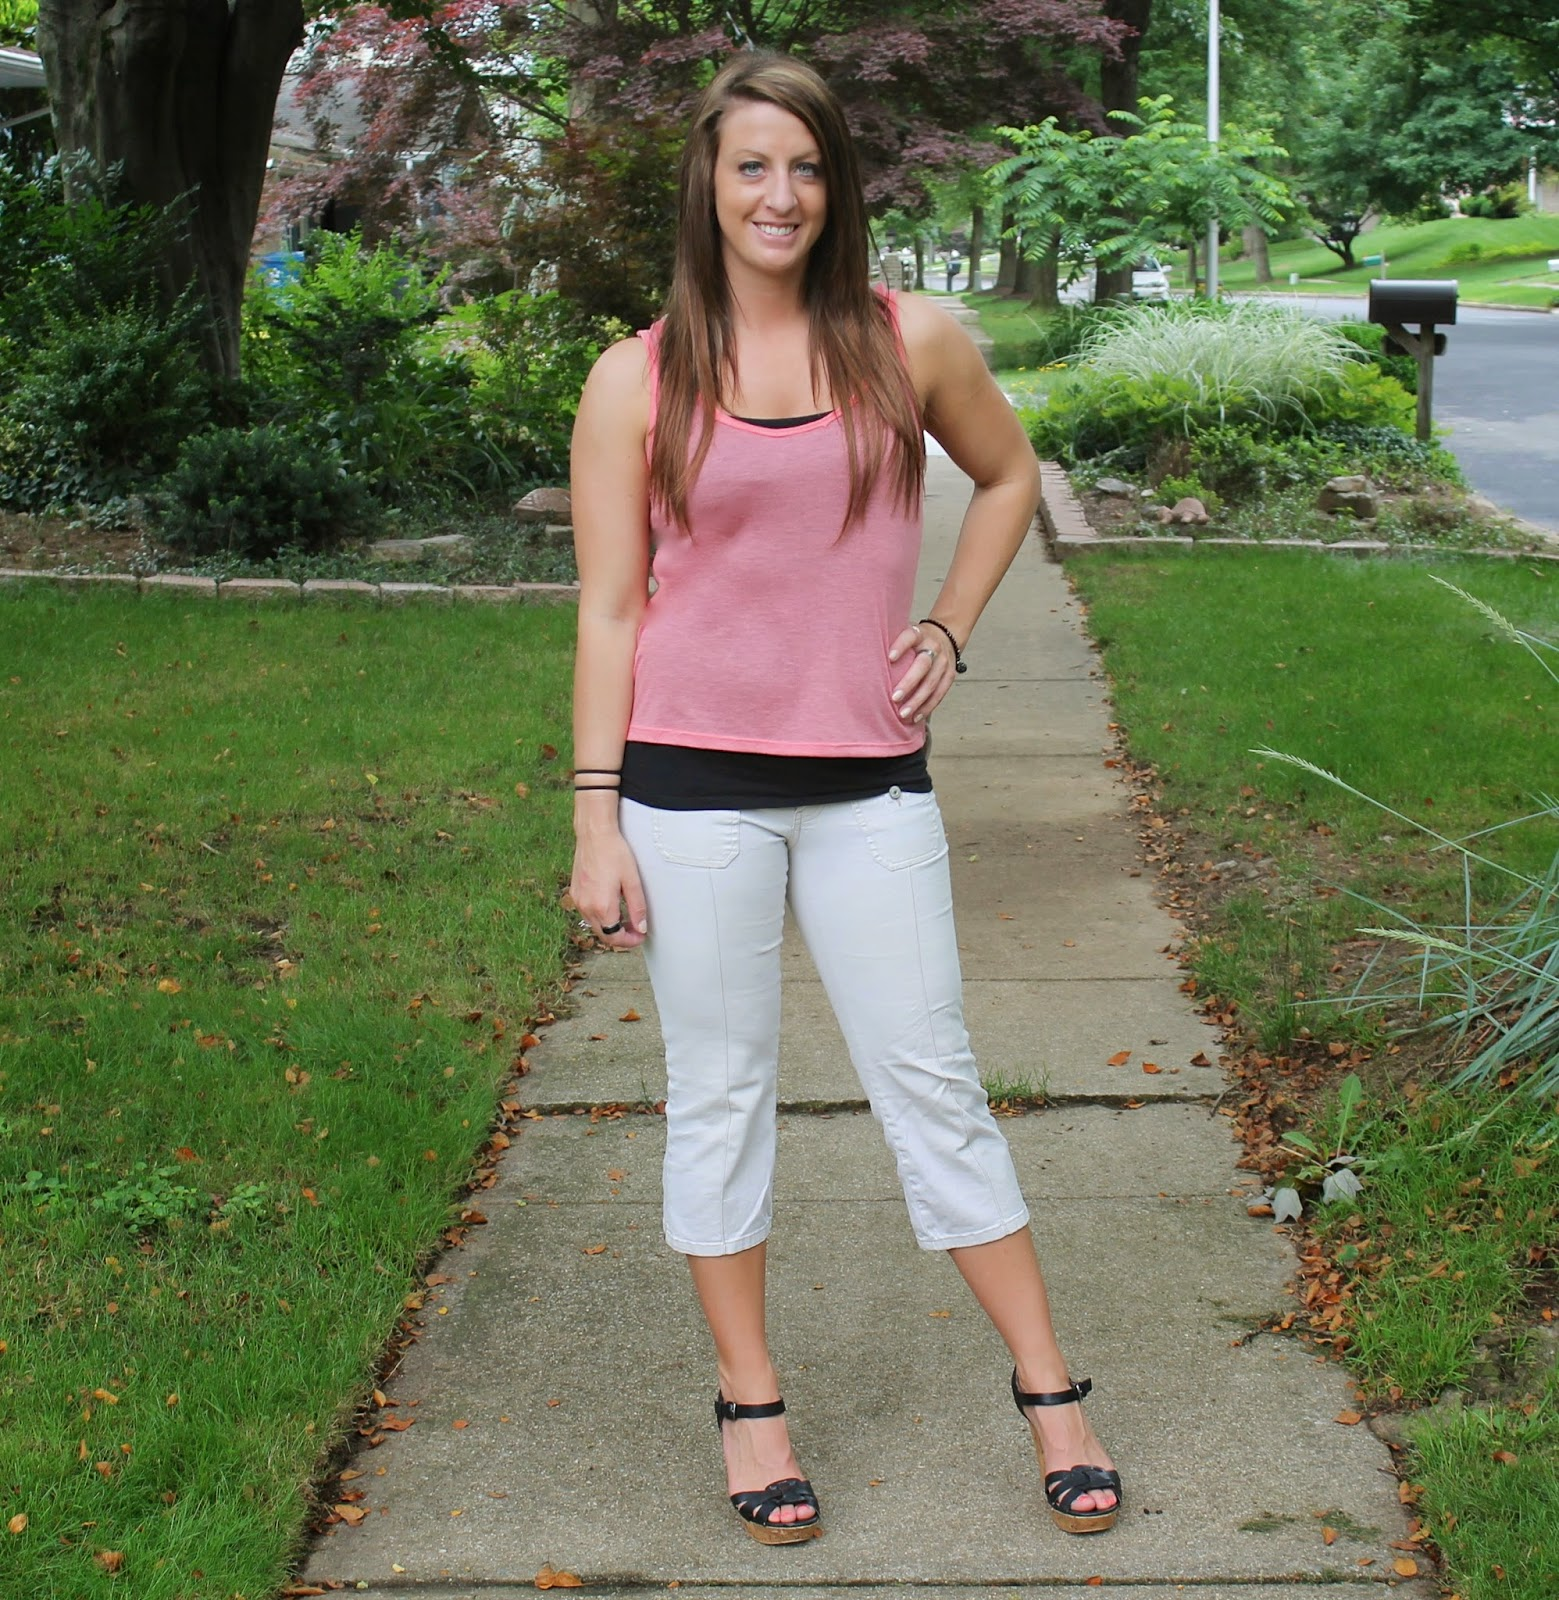 Sea of Pearls LA, Outfit of the day, outfits, tank top, casual